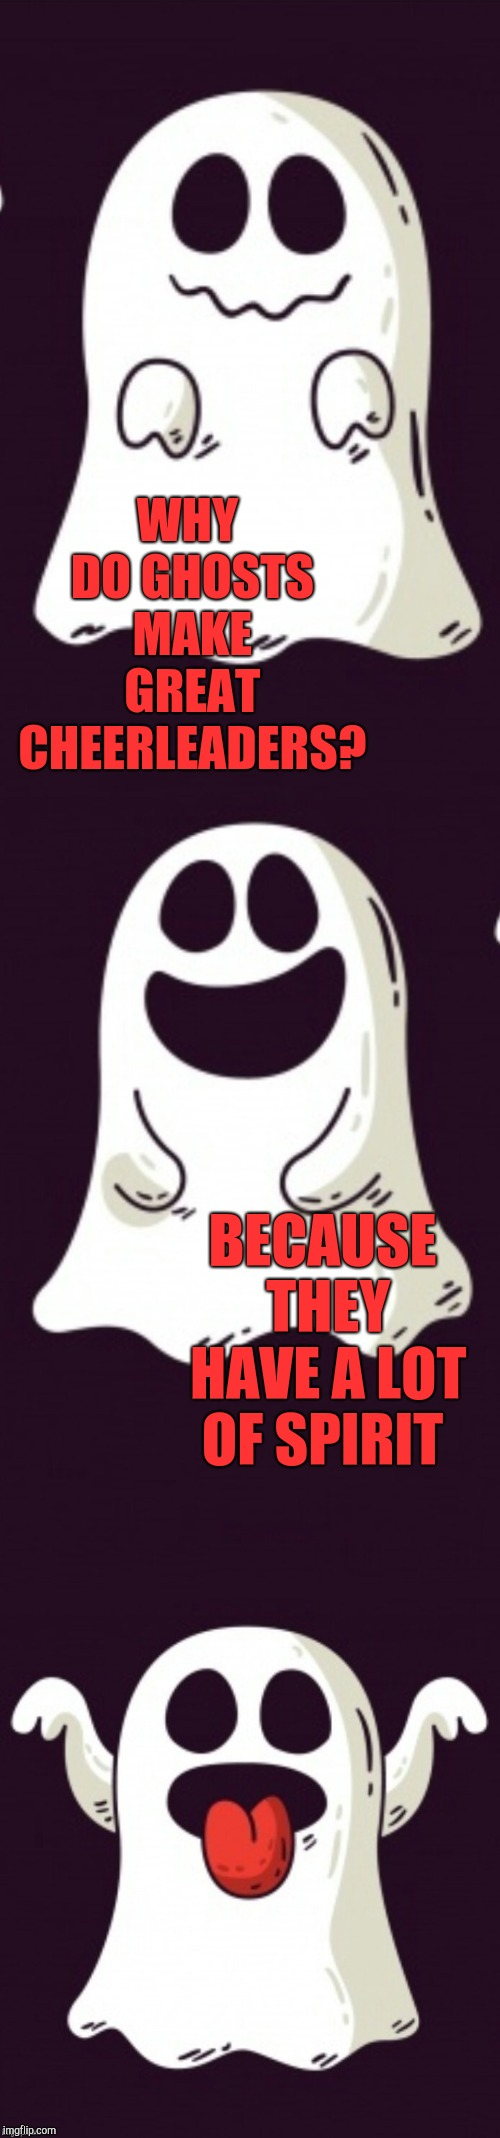 Ghost joke template | WHY DO GHOSTS MAKE GREAT CHEERLEADERS? BECAUSE THEY HAVE A LOT OF SPIRIT | image tagged in ghost joke template,halloween,ghosts,jbmemegeek,bad puns | made w/ Imgflip meme maker